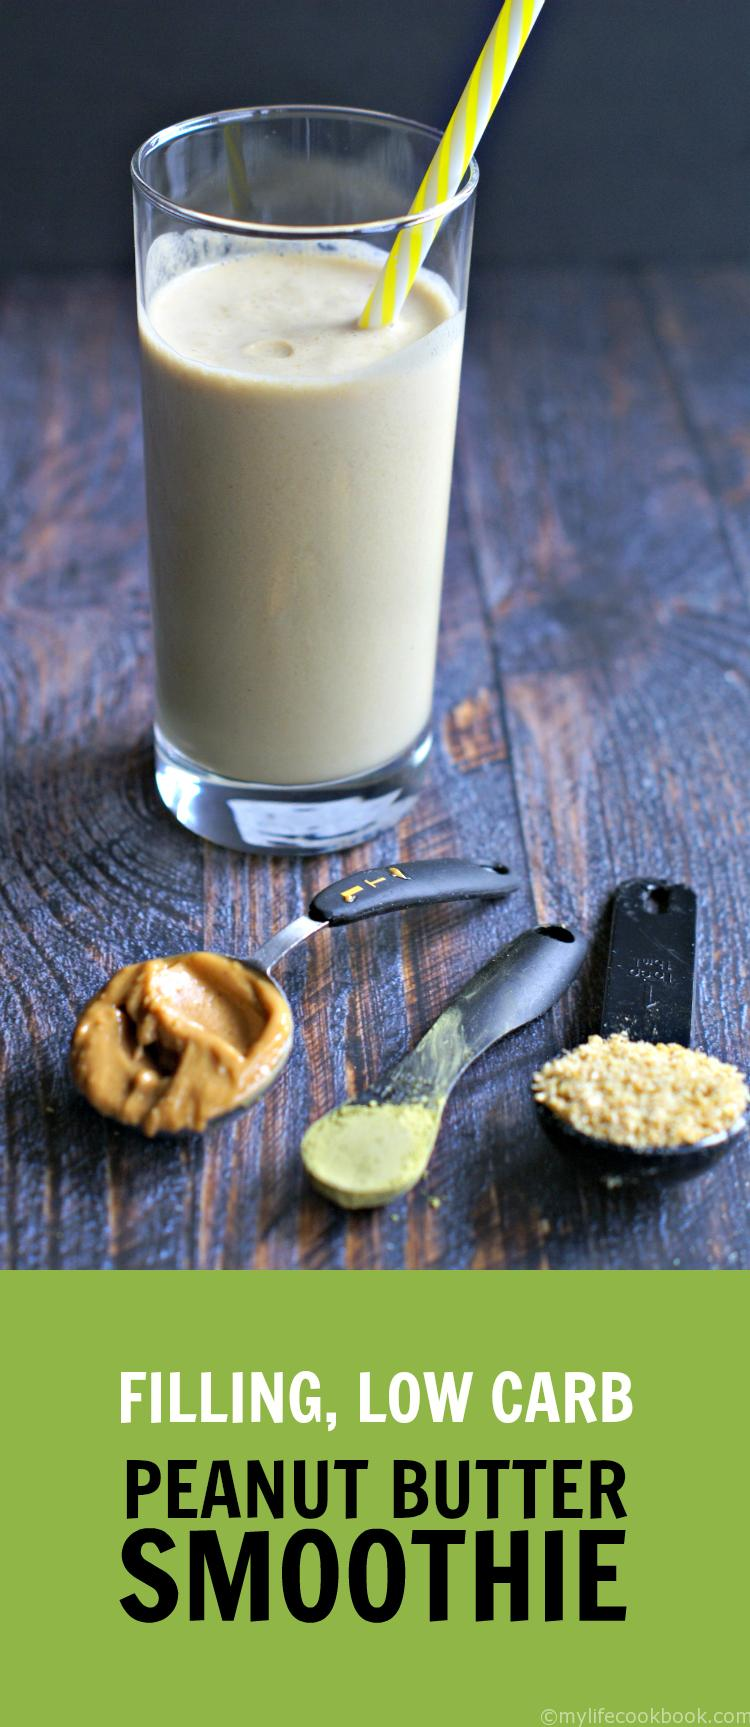 This filling, low carb peanut butter smoothie will get your going in the morning with matcha green tea and keep you satisfied until lunch.